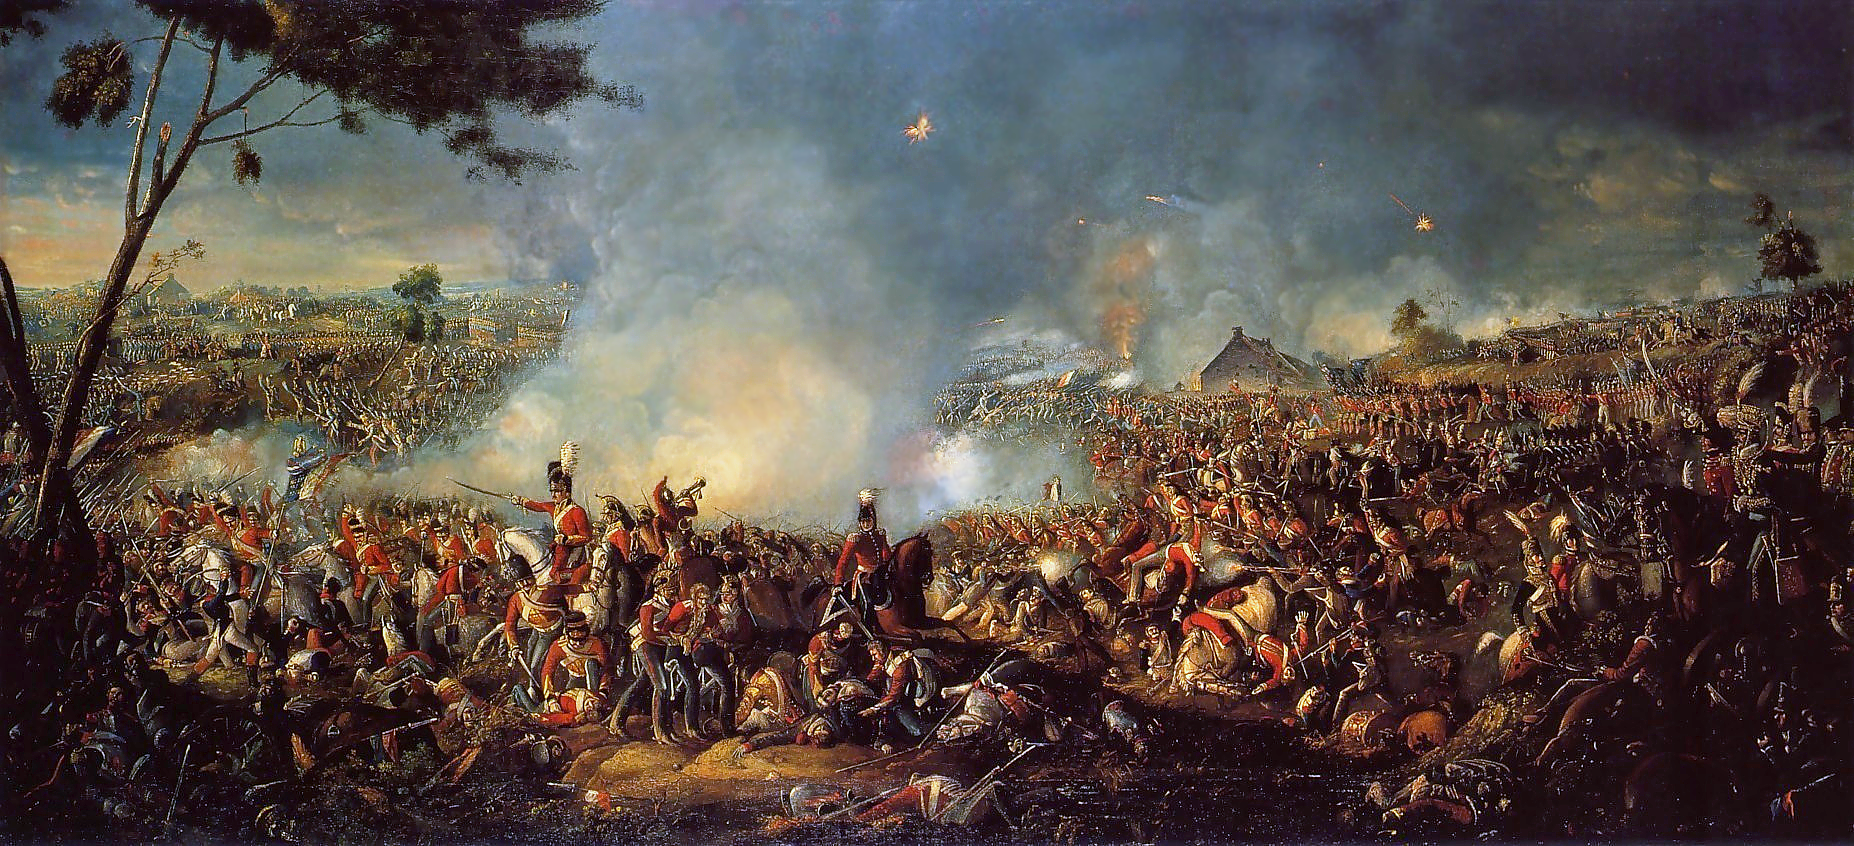 William Sadler II: The Battle of Waterloo